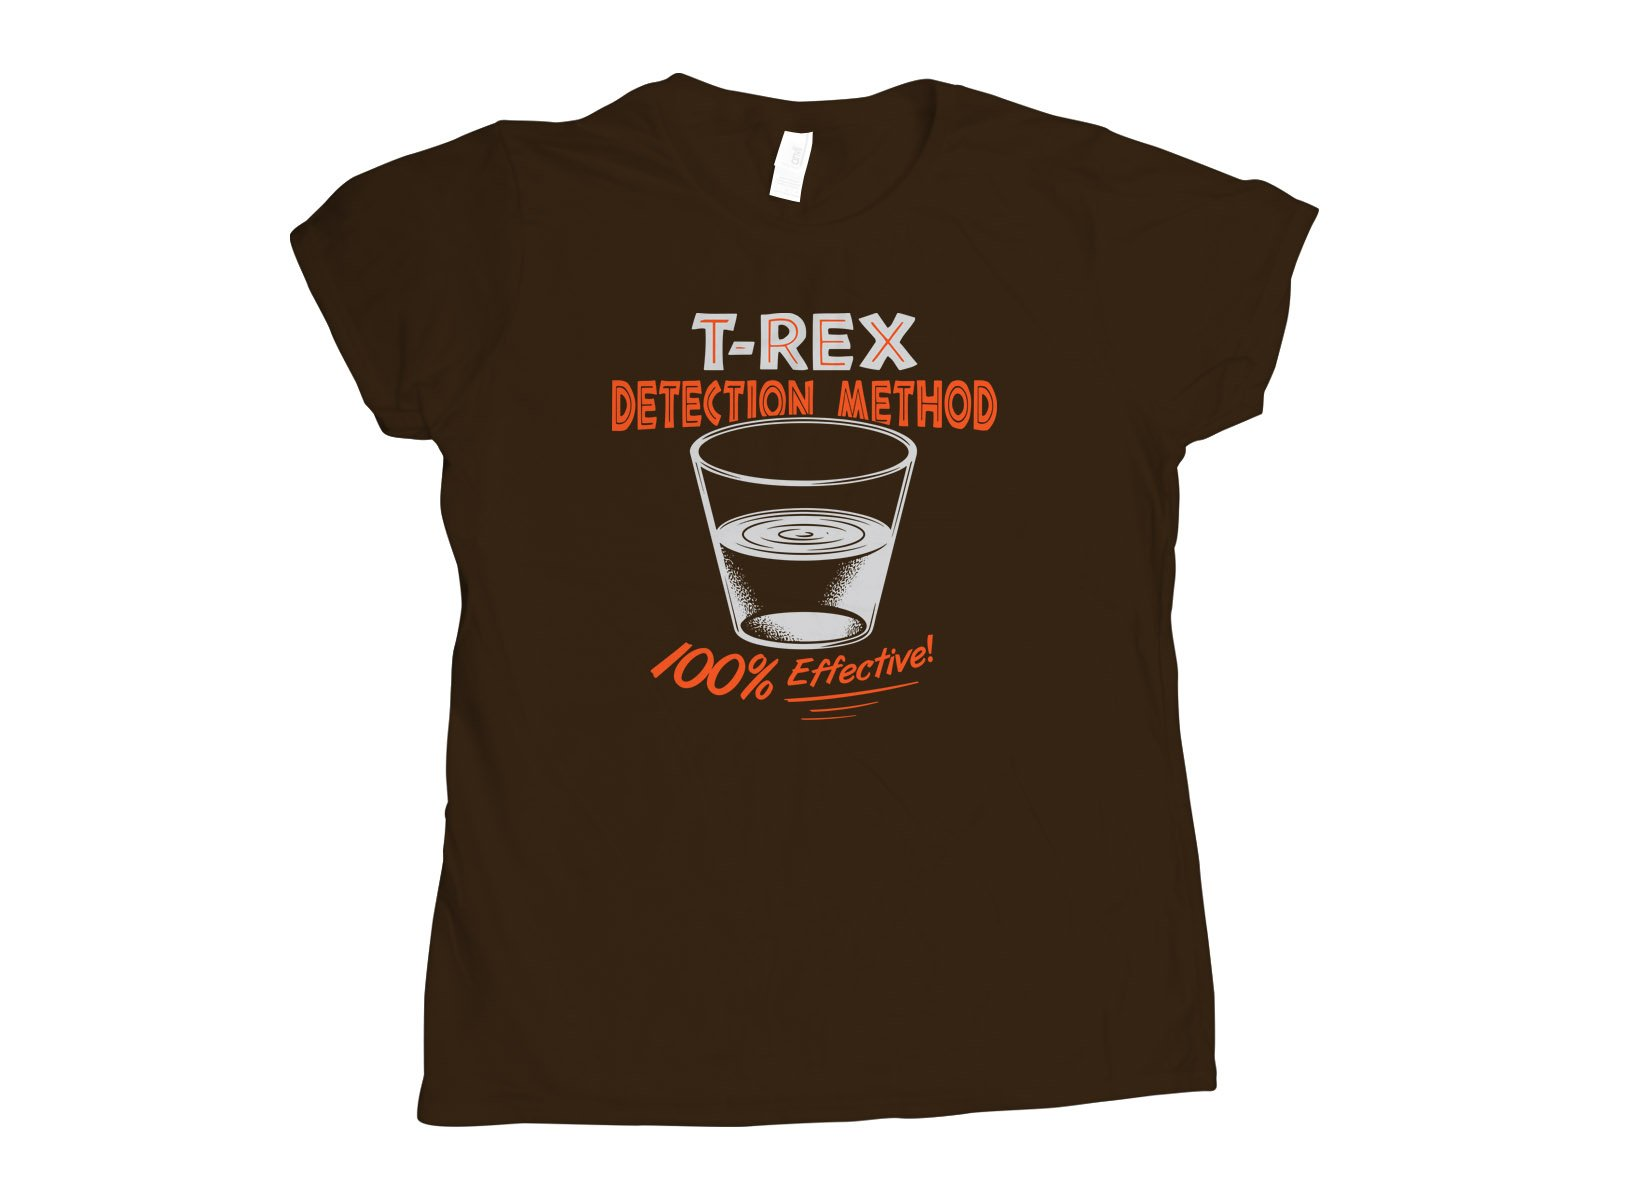 T-Rex Detection Method on Womens T-Shirt